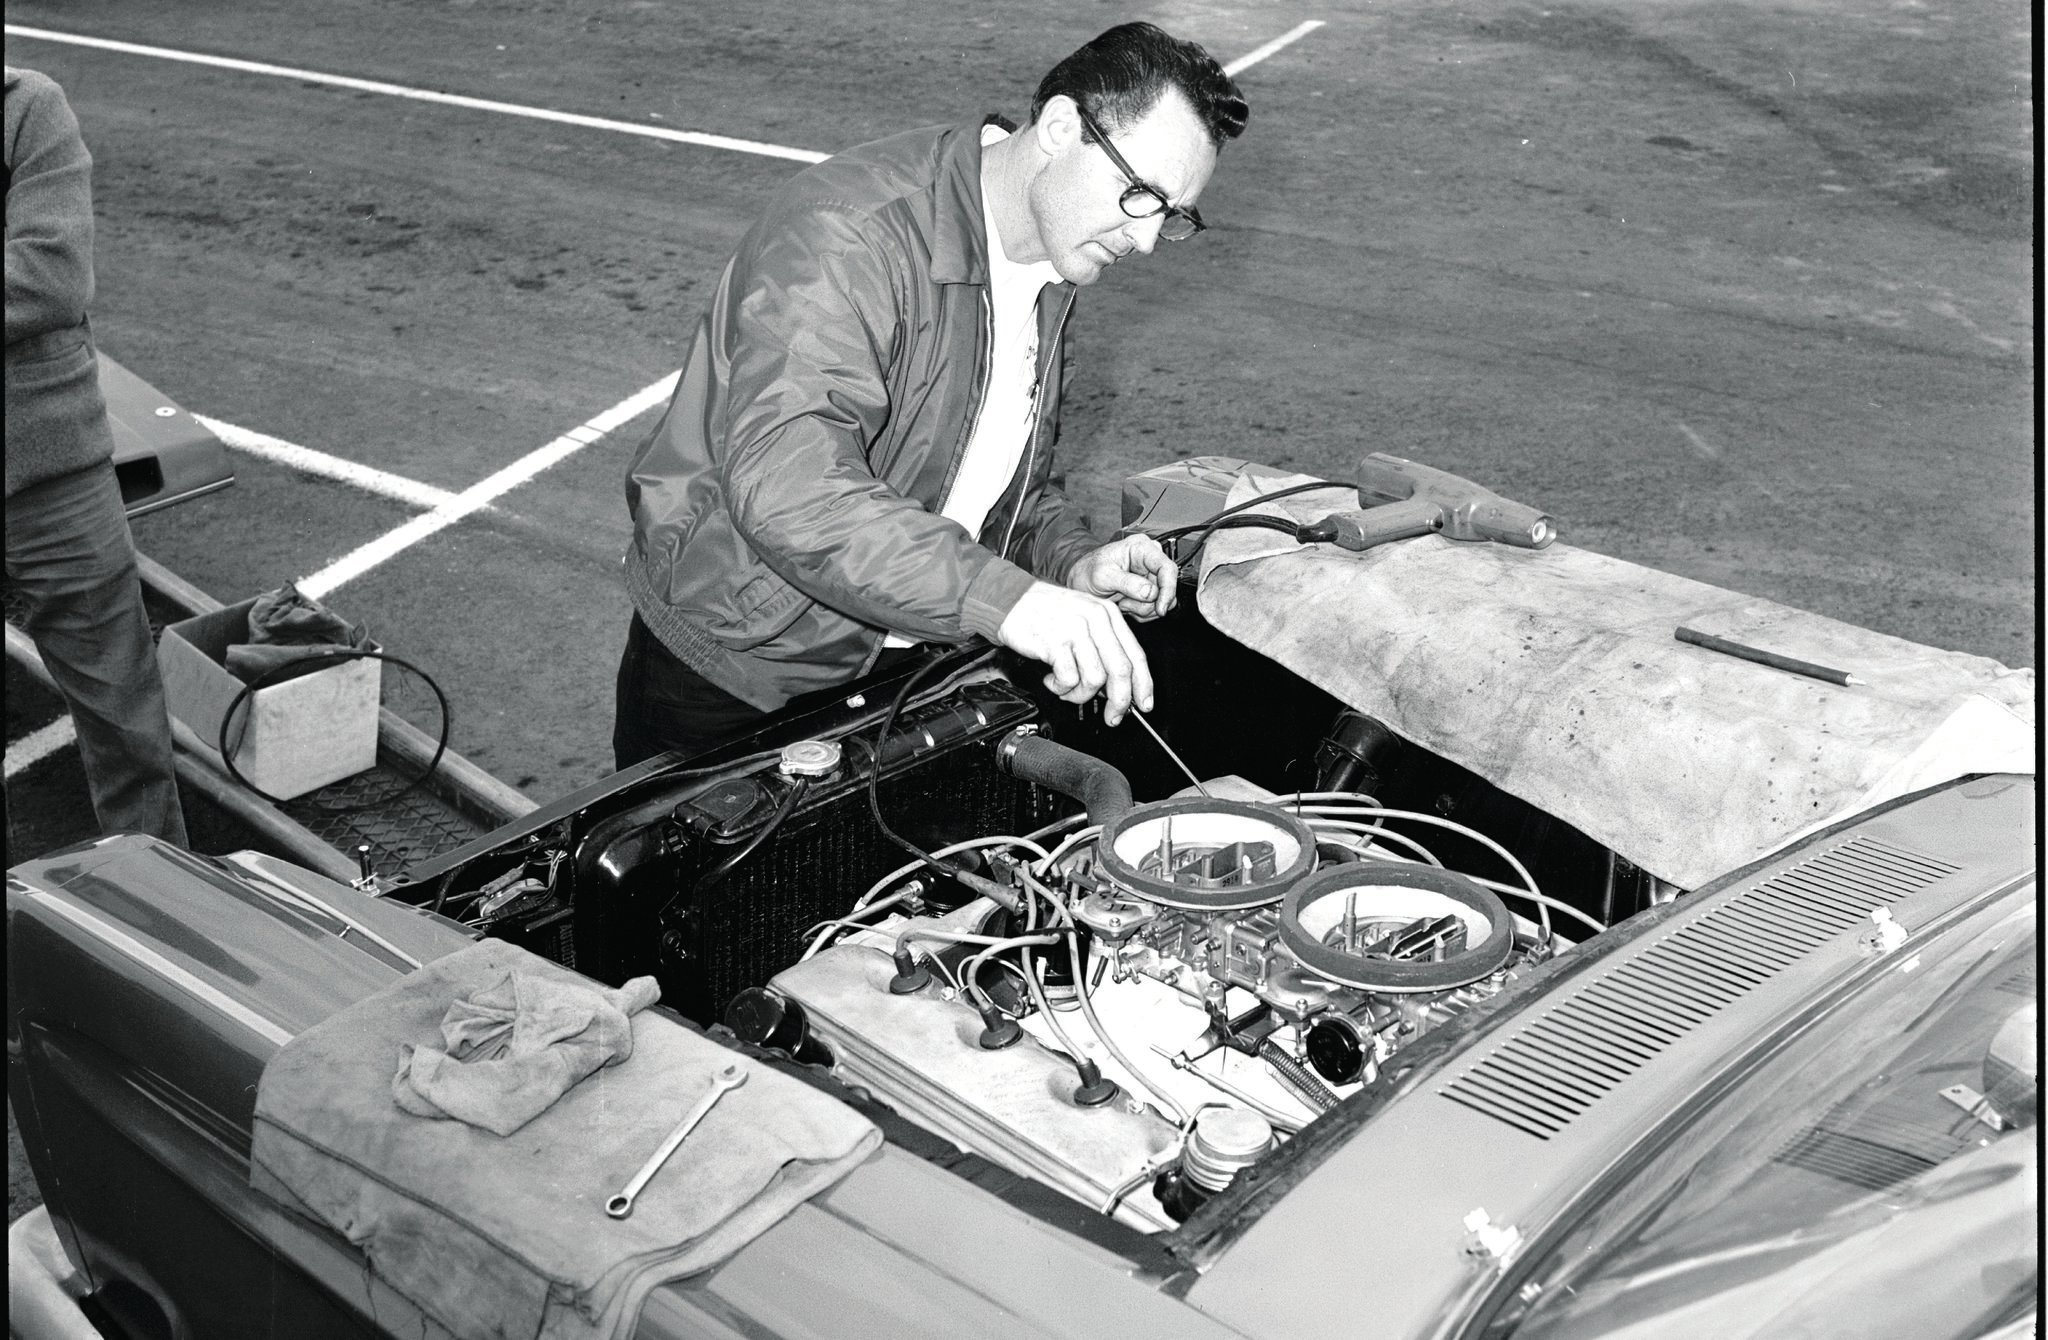 """Dyno"" Don Nicholson adjusting the carb of his Cammer in his 1965 Comet Cyclone. Dual carbs and Dyno Don tune netted 700 hp. This car would see its wheelbase altered and an 18 percent engine setback within the year to combat the altered-wheelbase Chrysler A/FX cars that were gaining on the Mercurys."